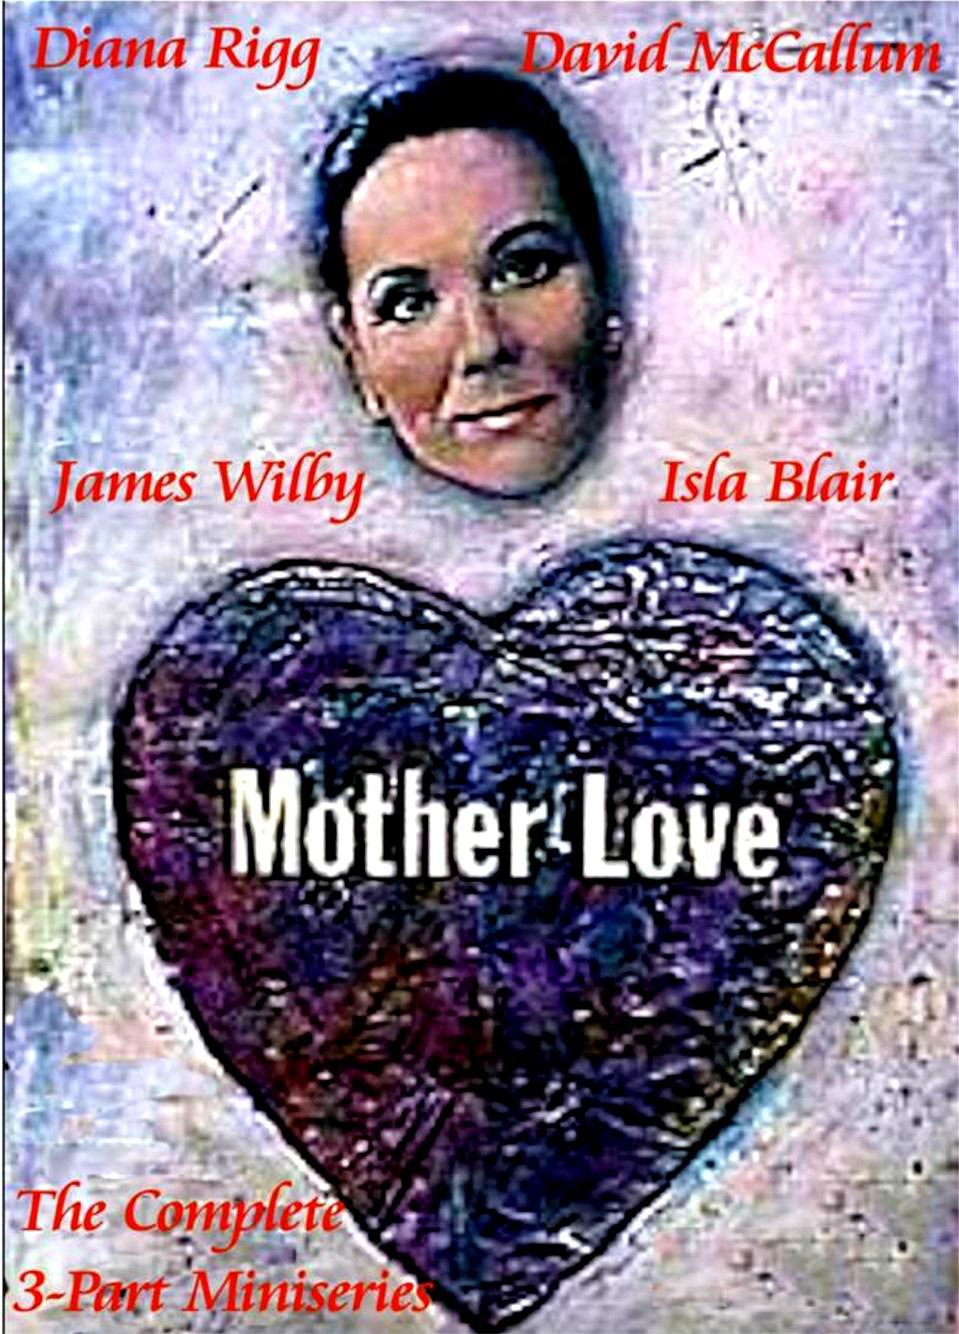 Mother Love 1989 Diana Rigg